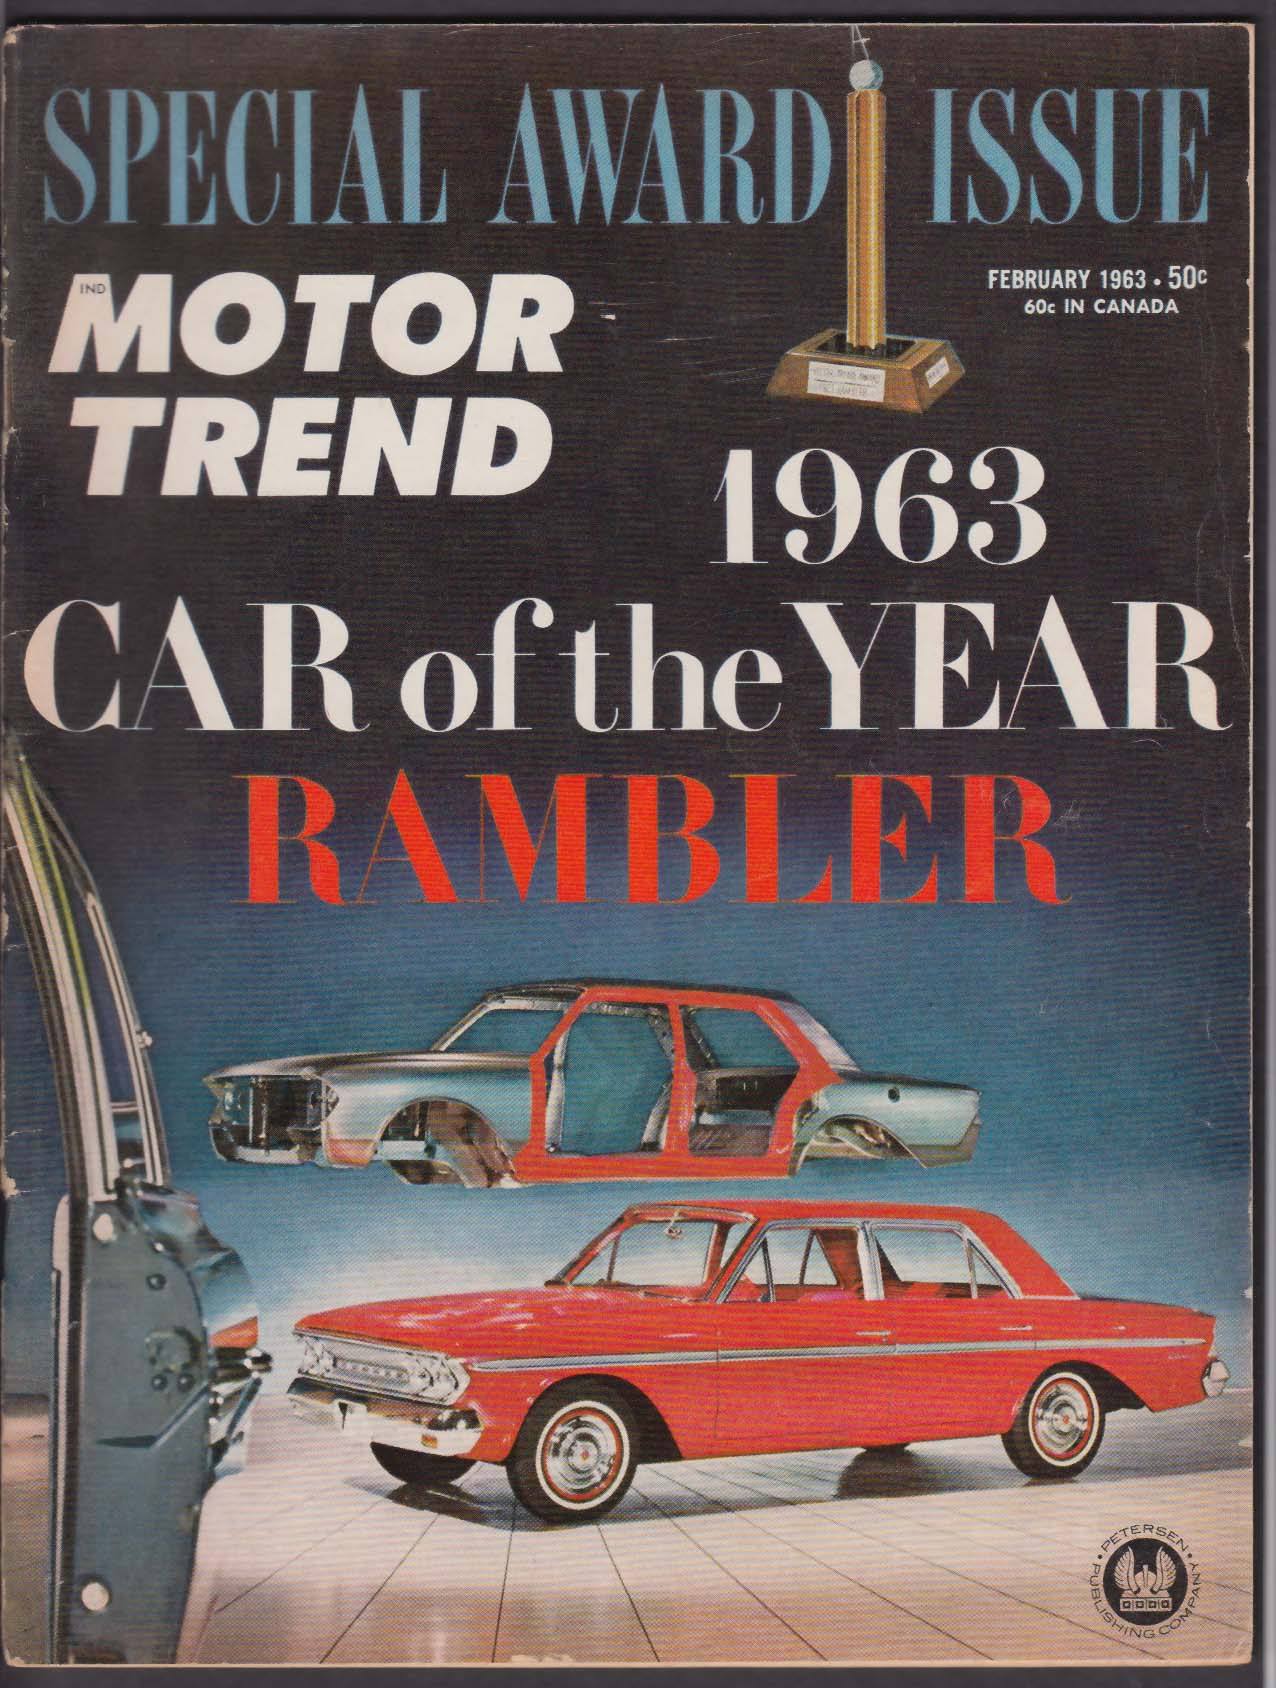 MOTOR TREND Car of the Year Issue Rambler American Dodge Dart road